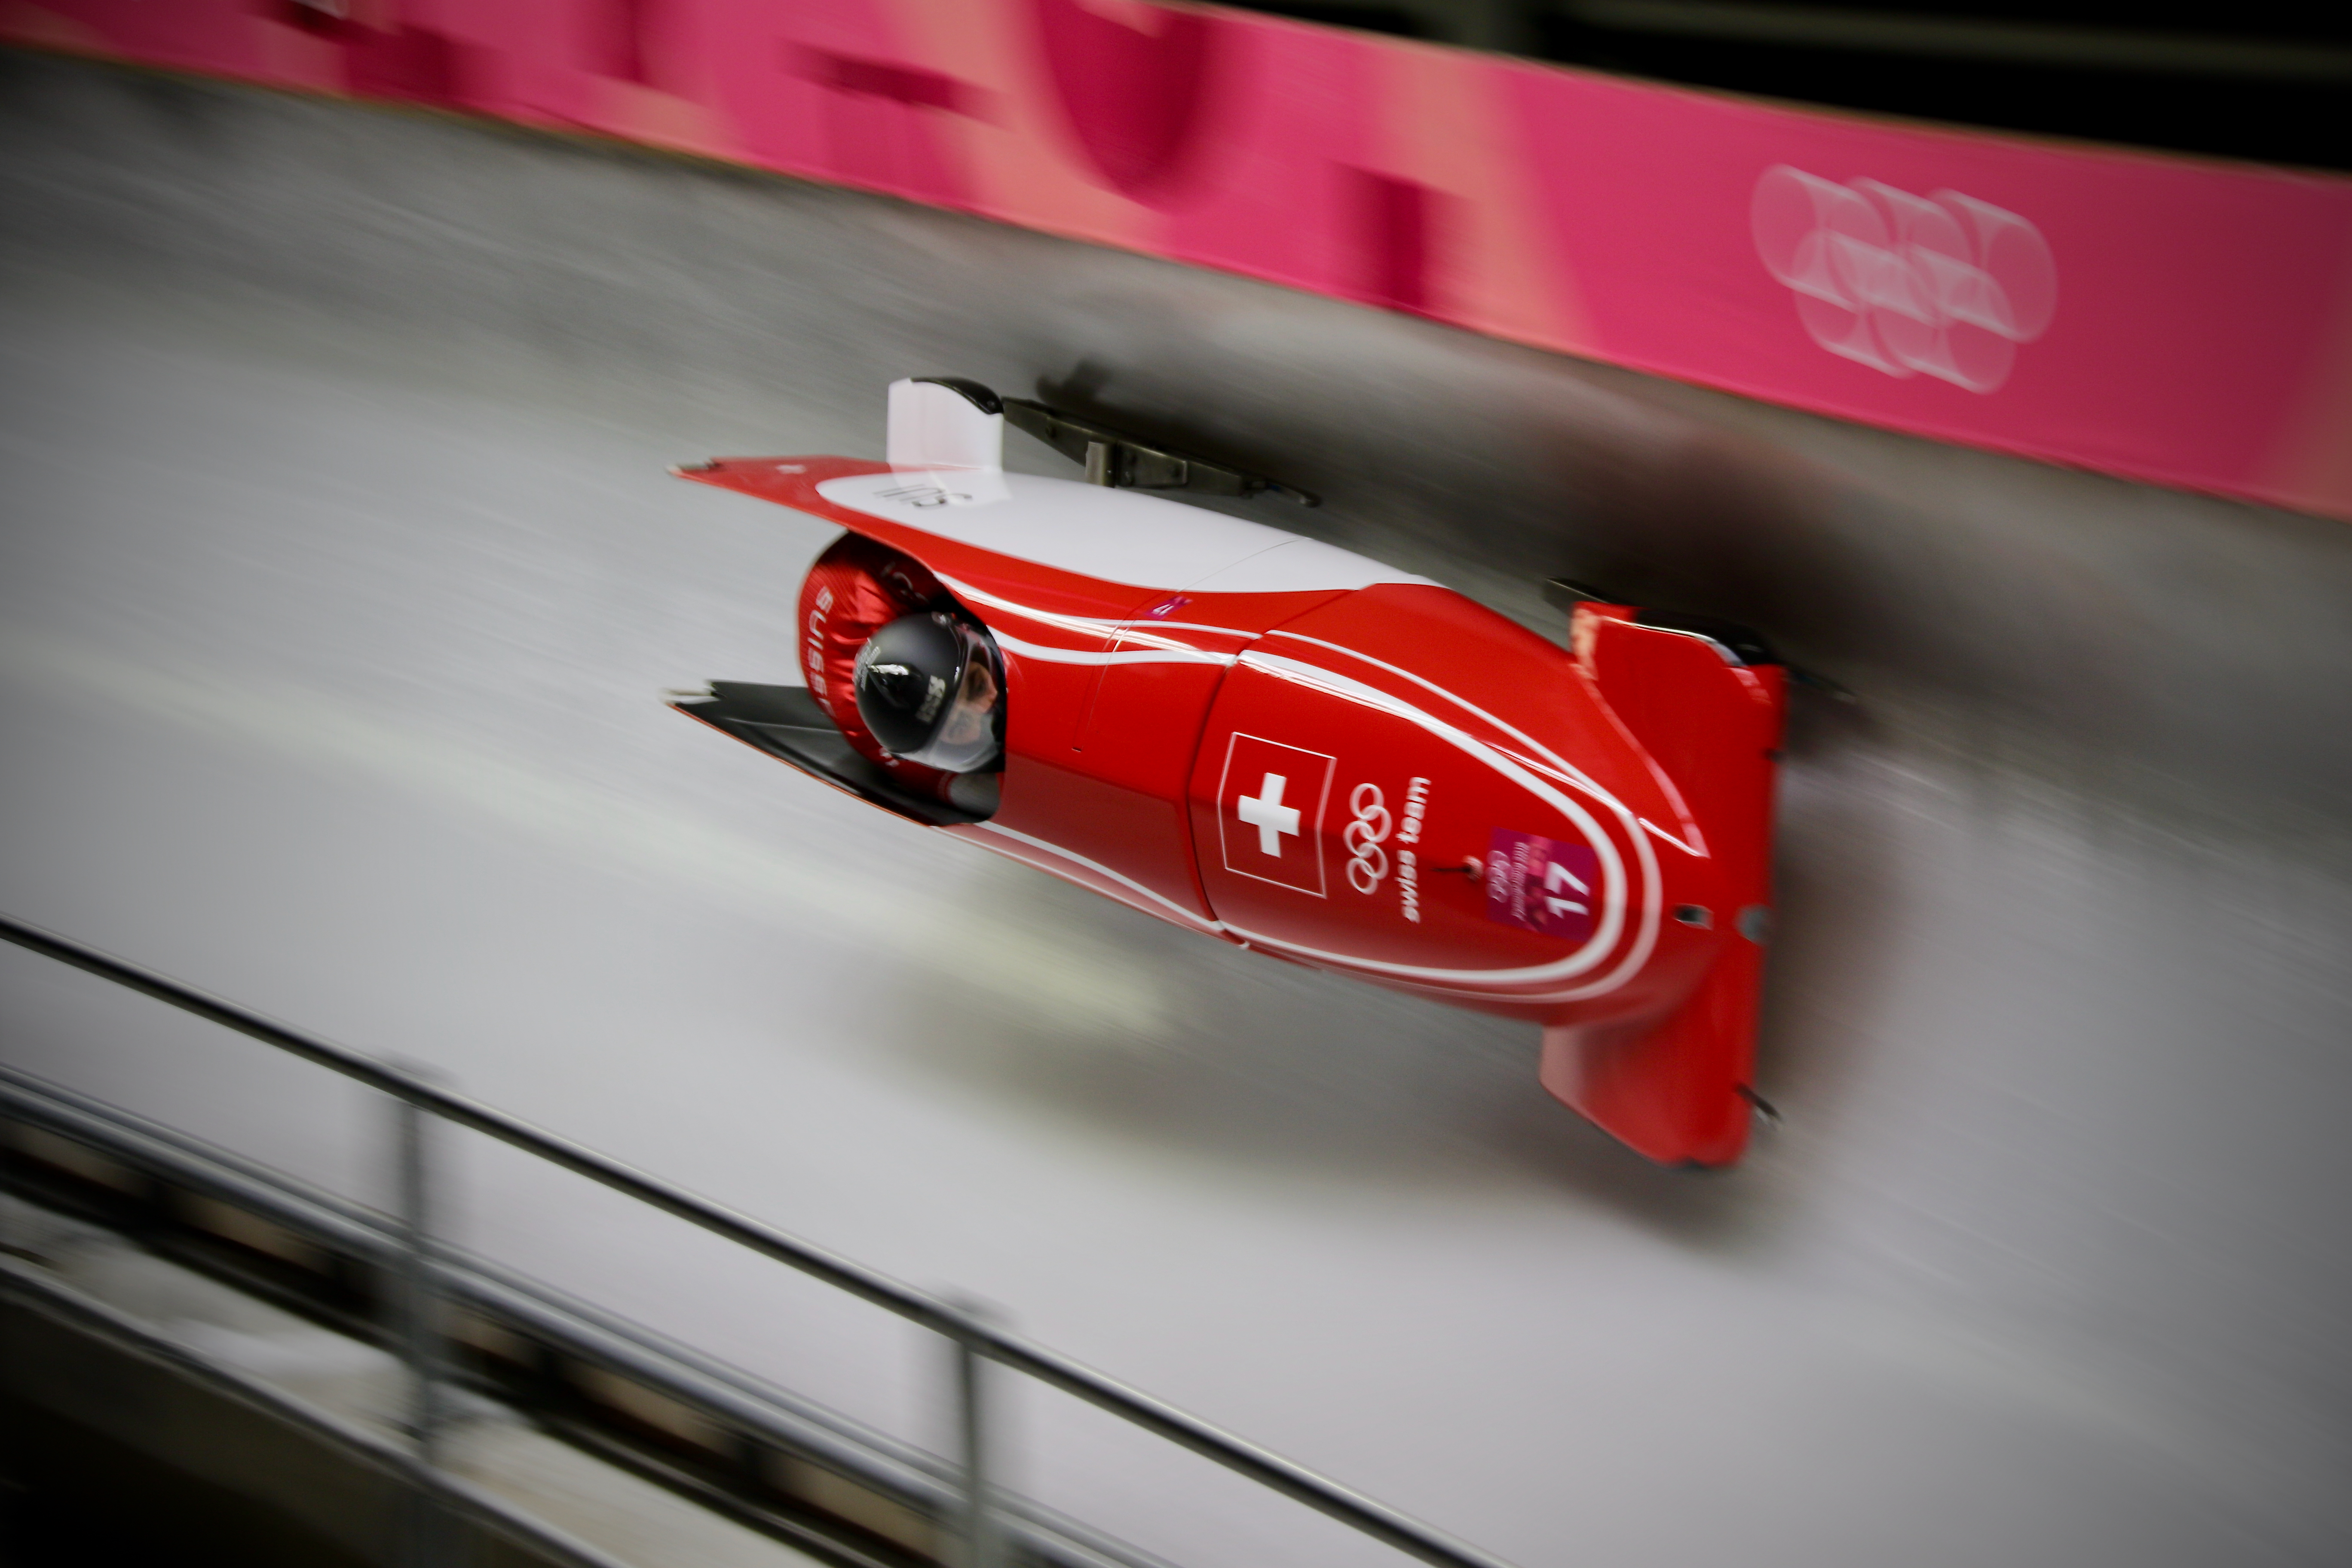 Swiss team racing in the two-man bobsleigh event at PyongChang Winter Olympics